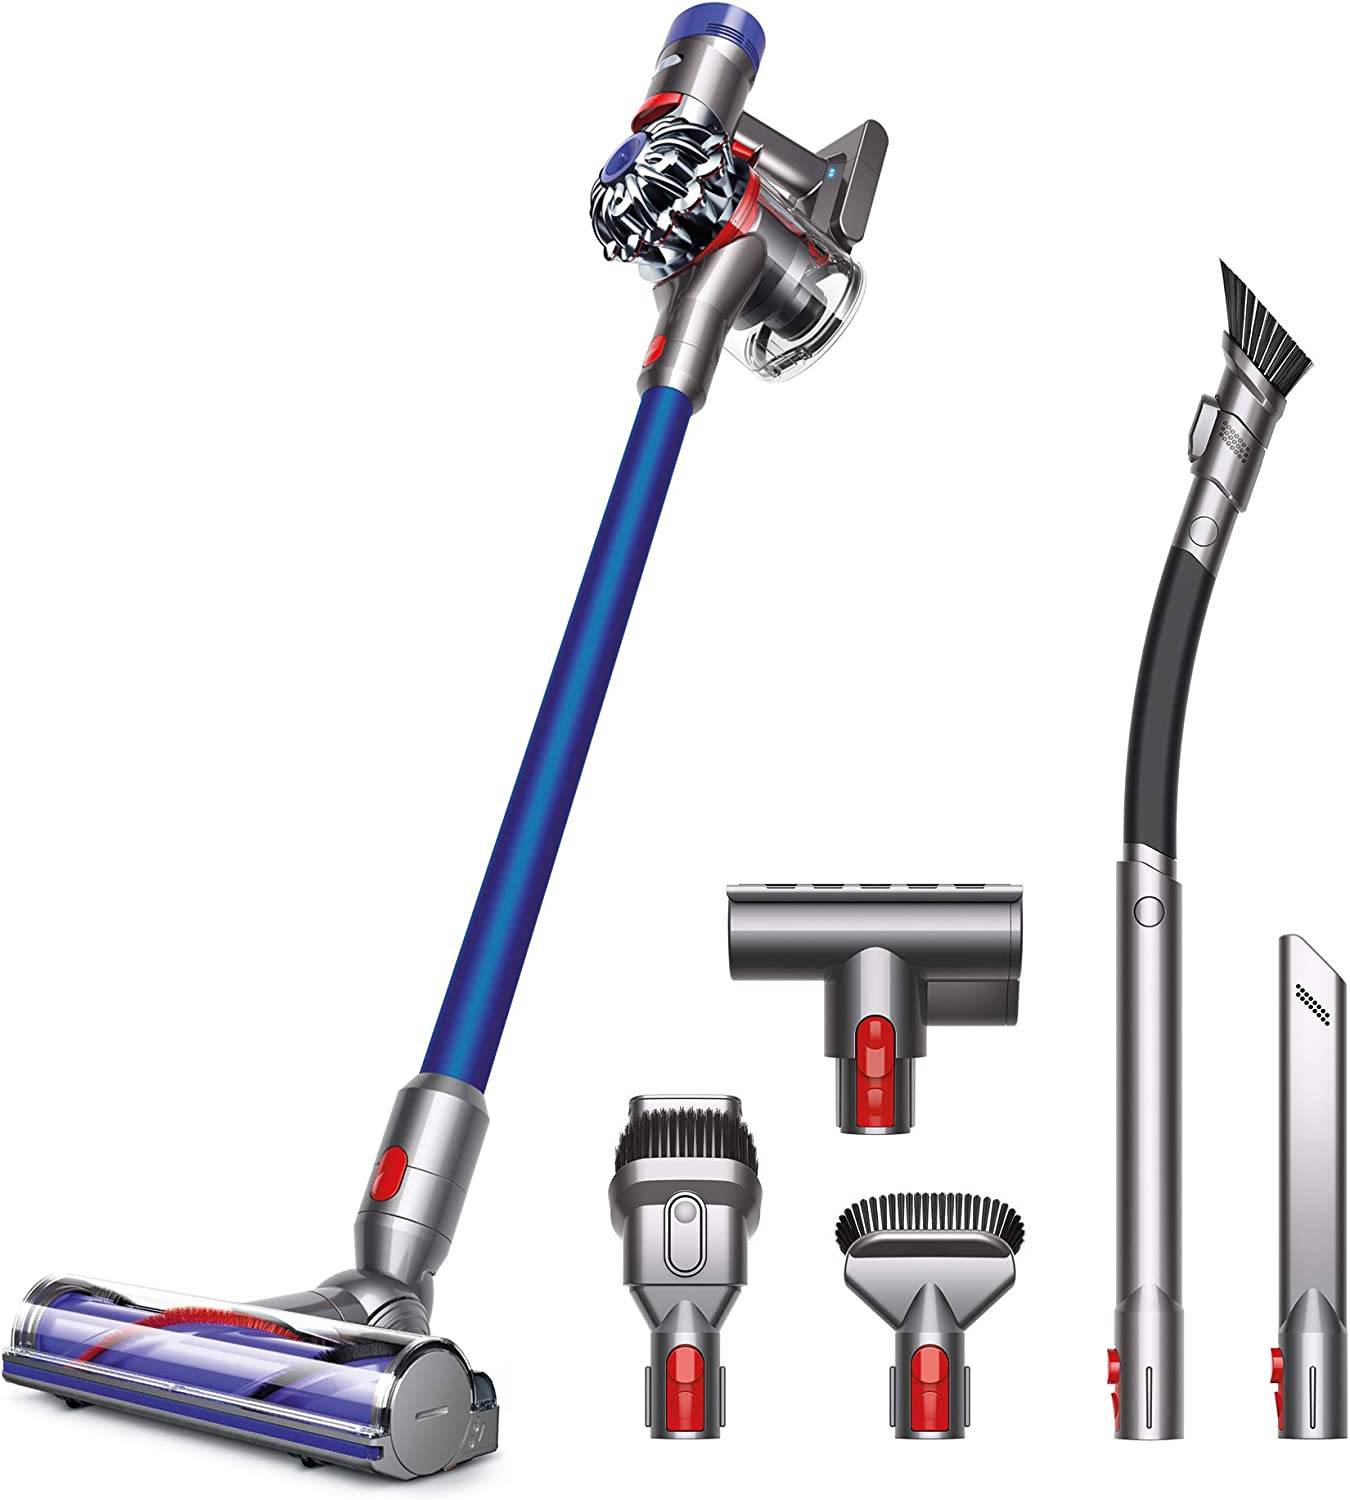 Top 7 cordless stick vacuum cleaners